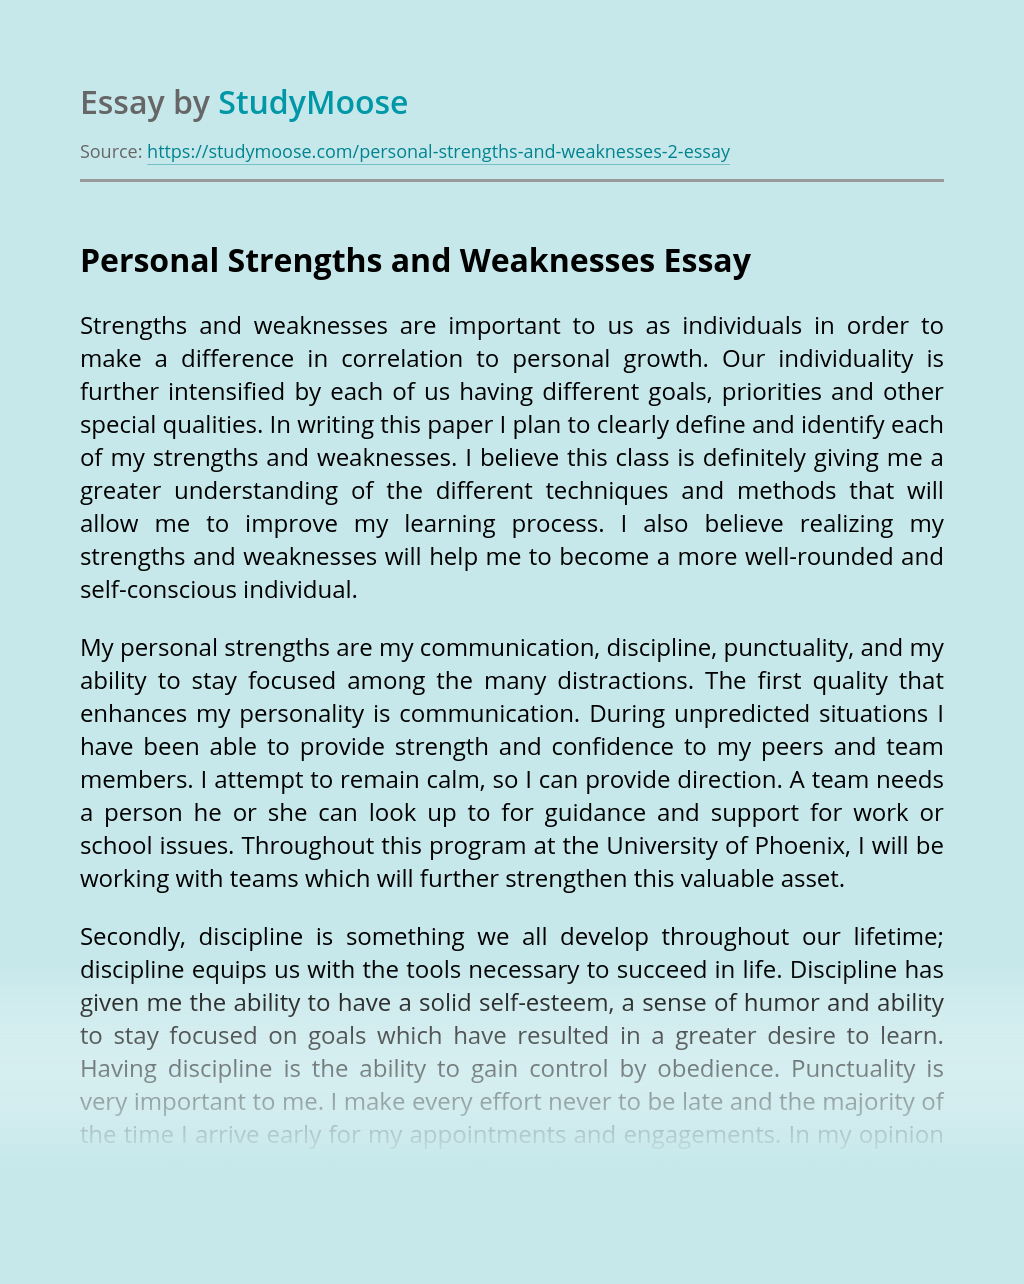 Strengths And Weaknesses As A Writer Essay